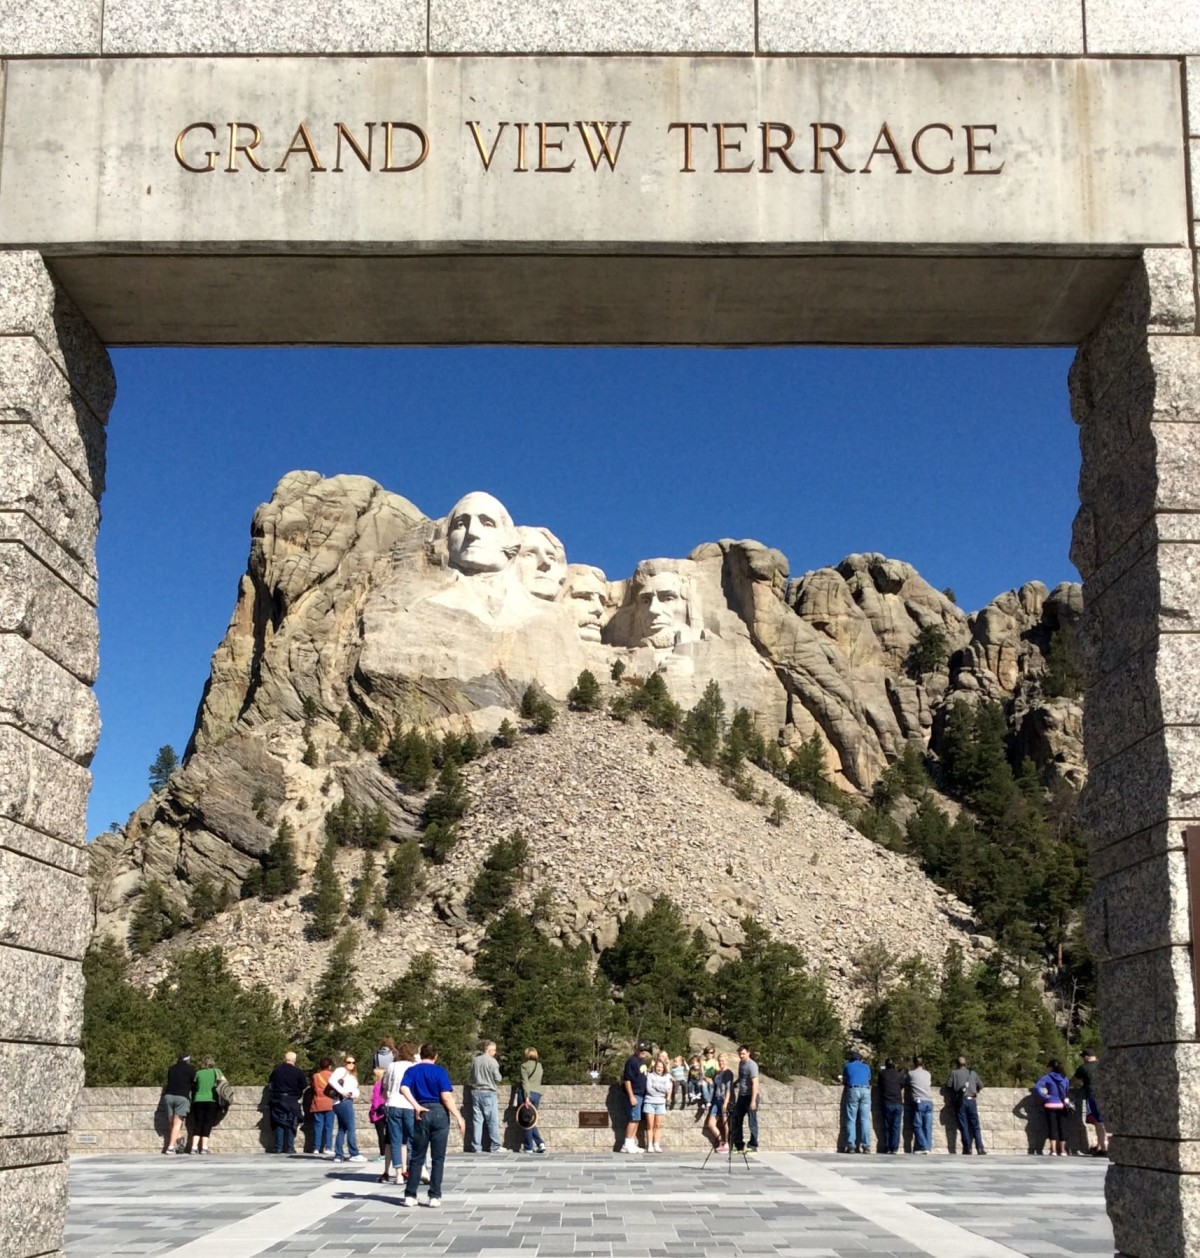 Mount-Rushmore-South-Dakota-USA-5